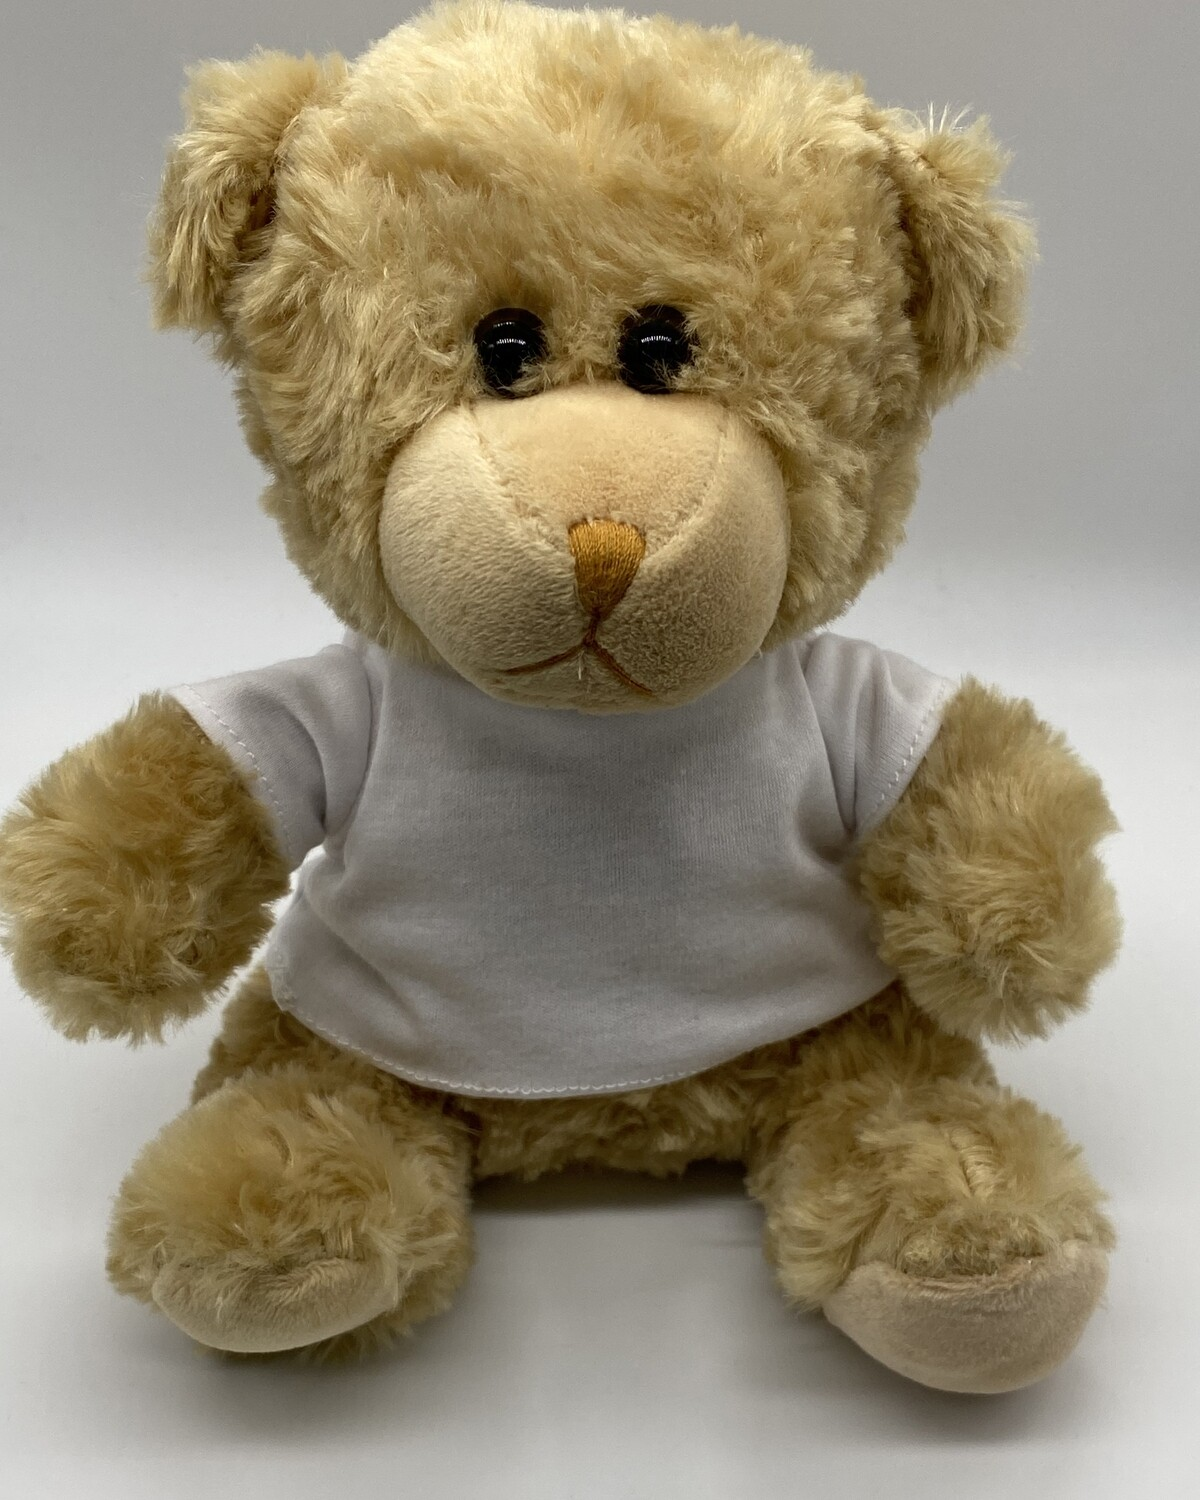 Plush bear with sublimation blank tshirt